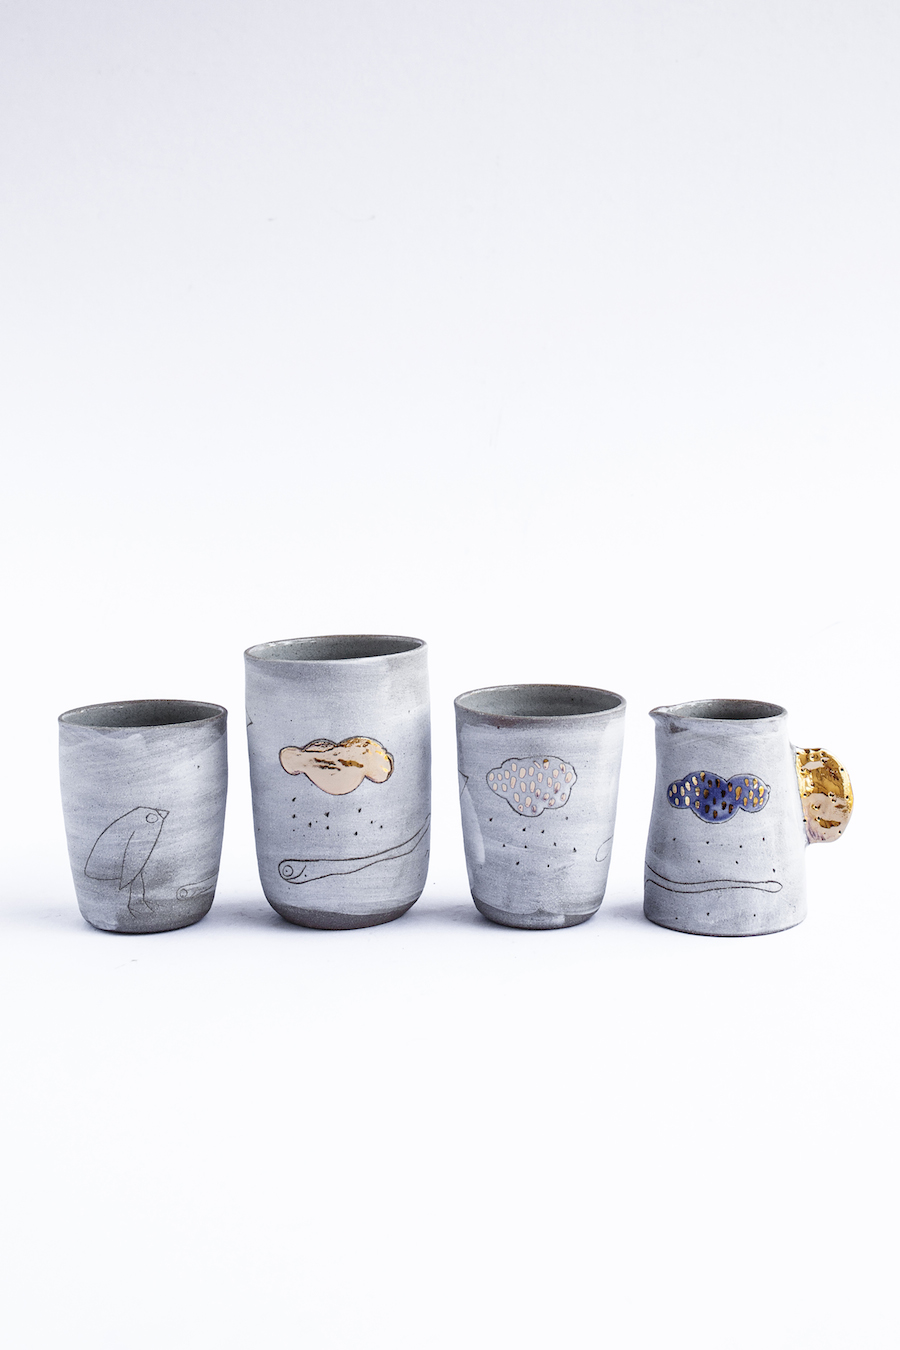 Bridget Bodenham grey mugs and cups